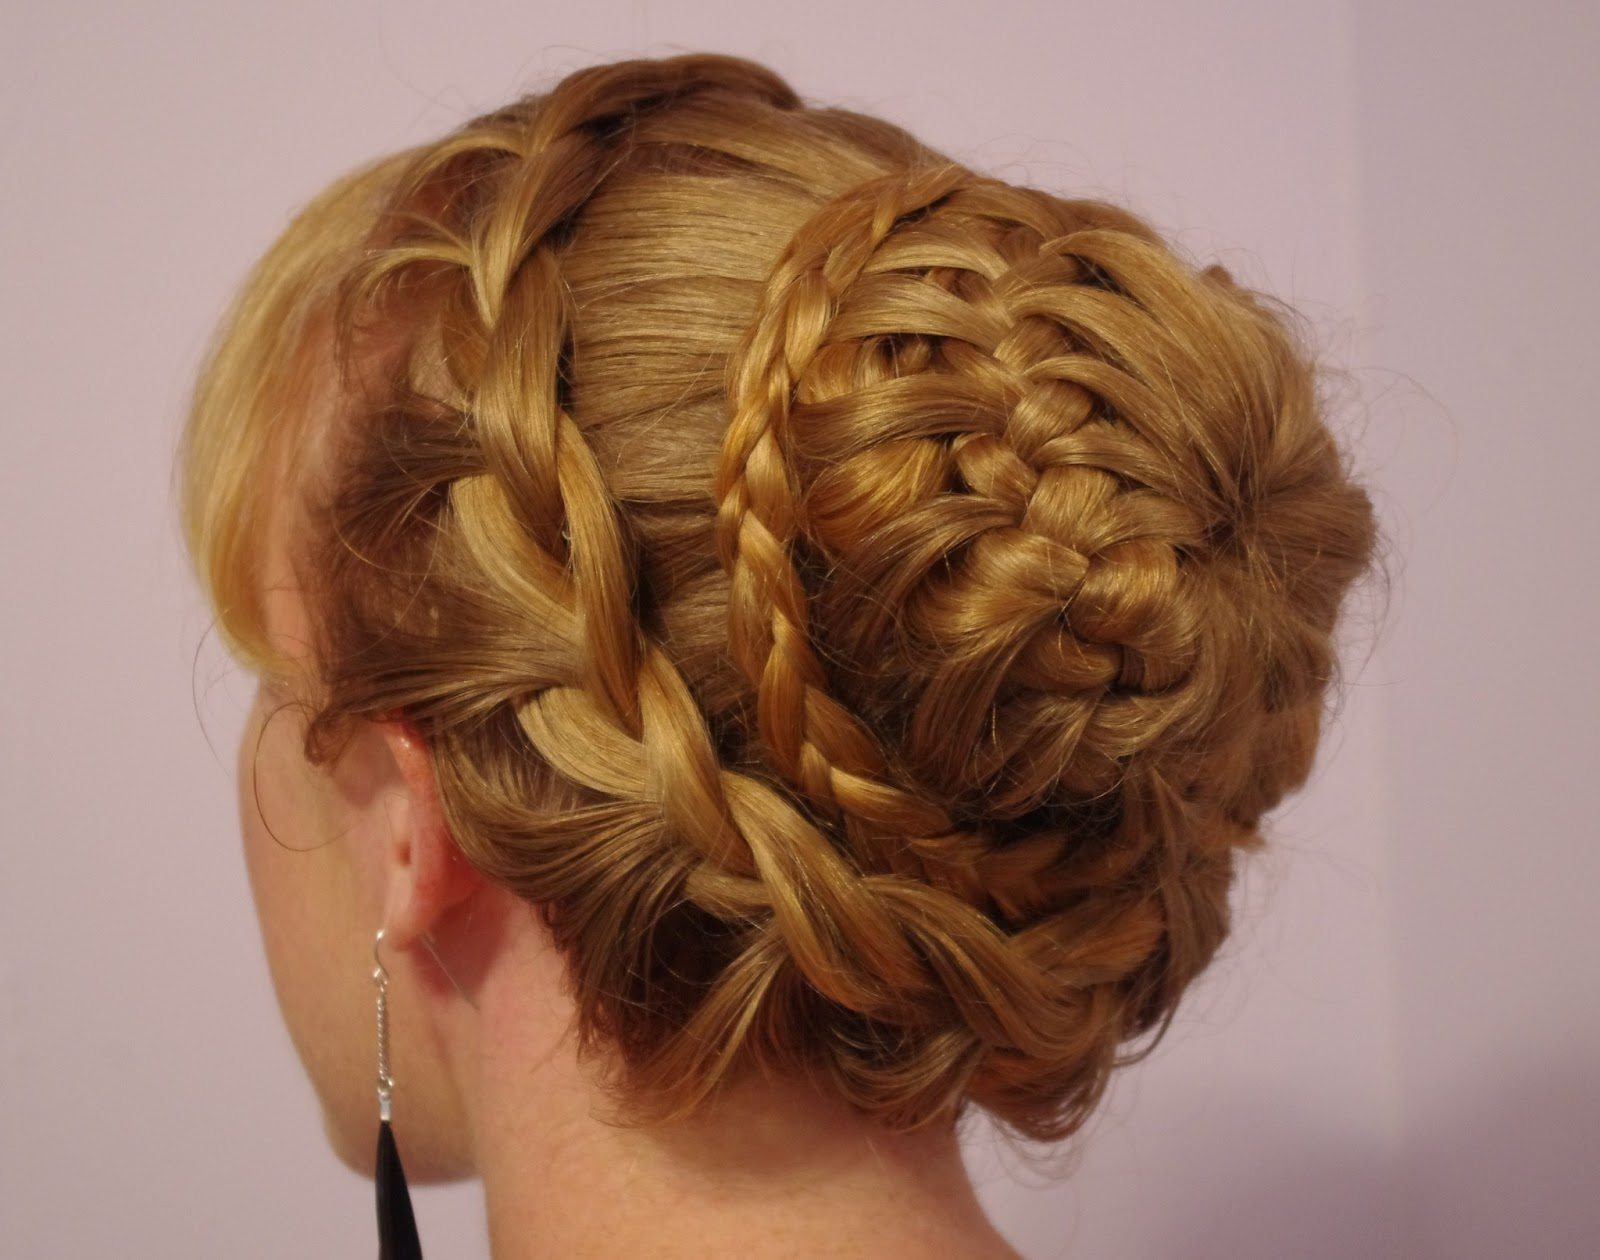 Wondrous Pictures Of Braided Hairstyles Bun Hairstyle Inspiration Daily Dogsangcom